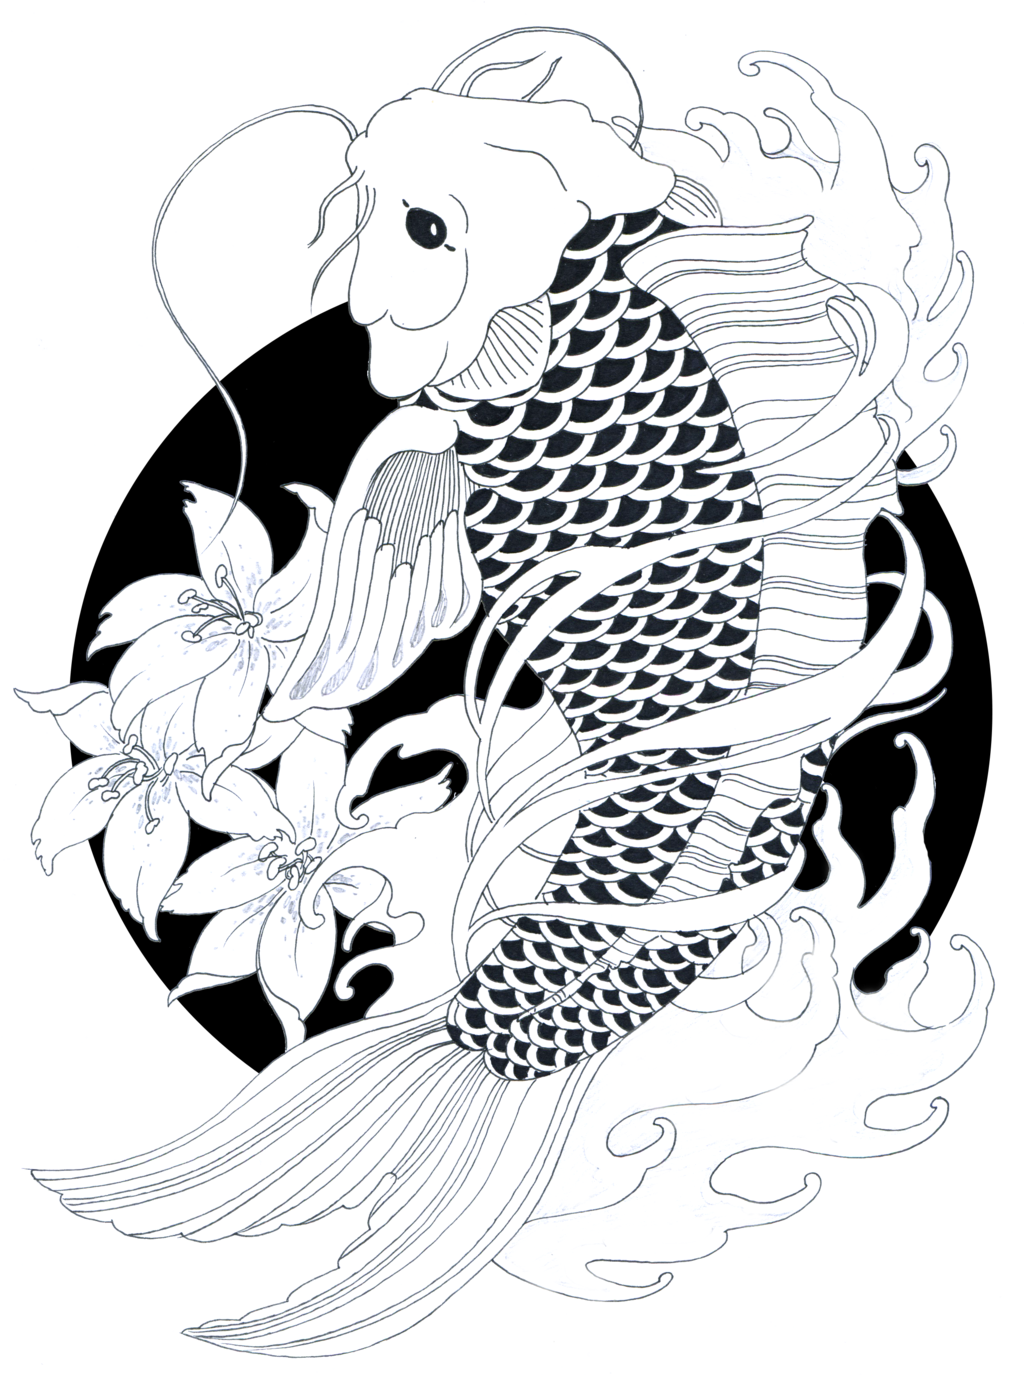 Koi fish tattoo png. Koifish by zakariaseatworld deviantart